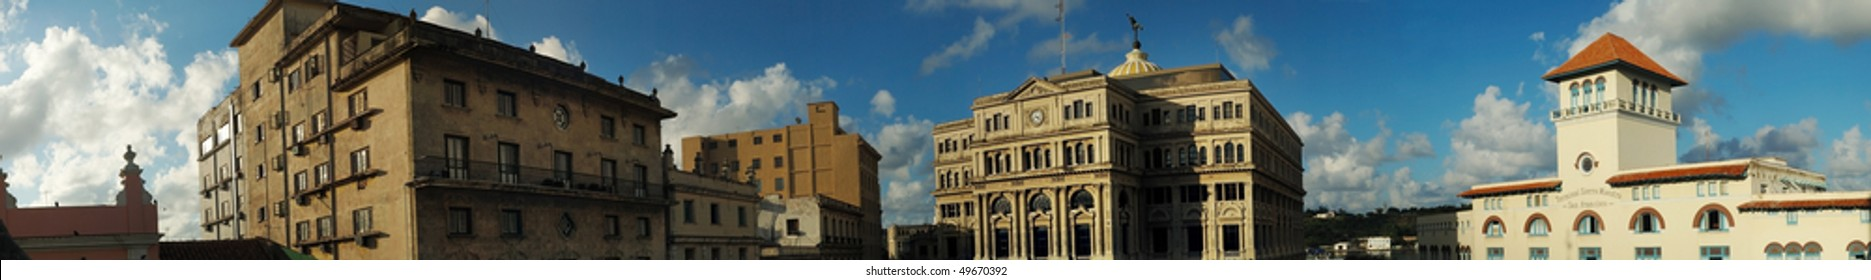 Panoramic view of typical Old havana buildings against sunset background